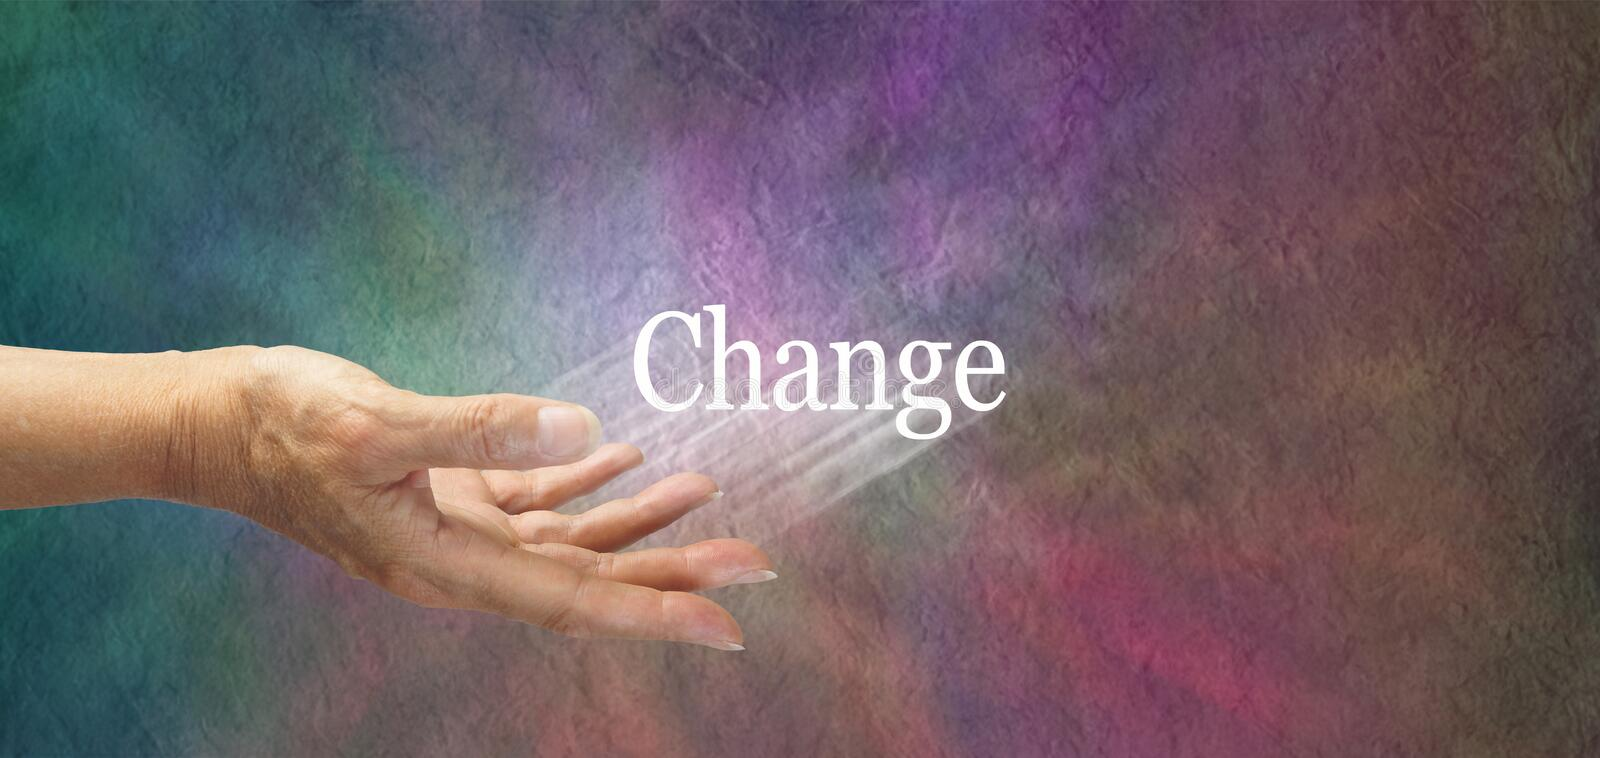 Offering change. Female hand outstretched with the word 'Change' appearing to move outwards indicating change is suggested, on a multicolored stone effect vector illustration